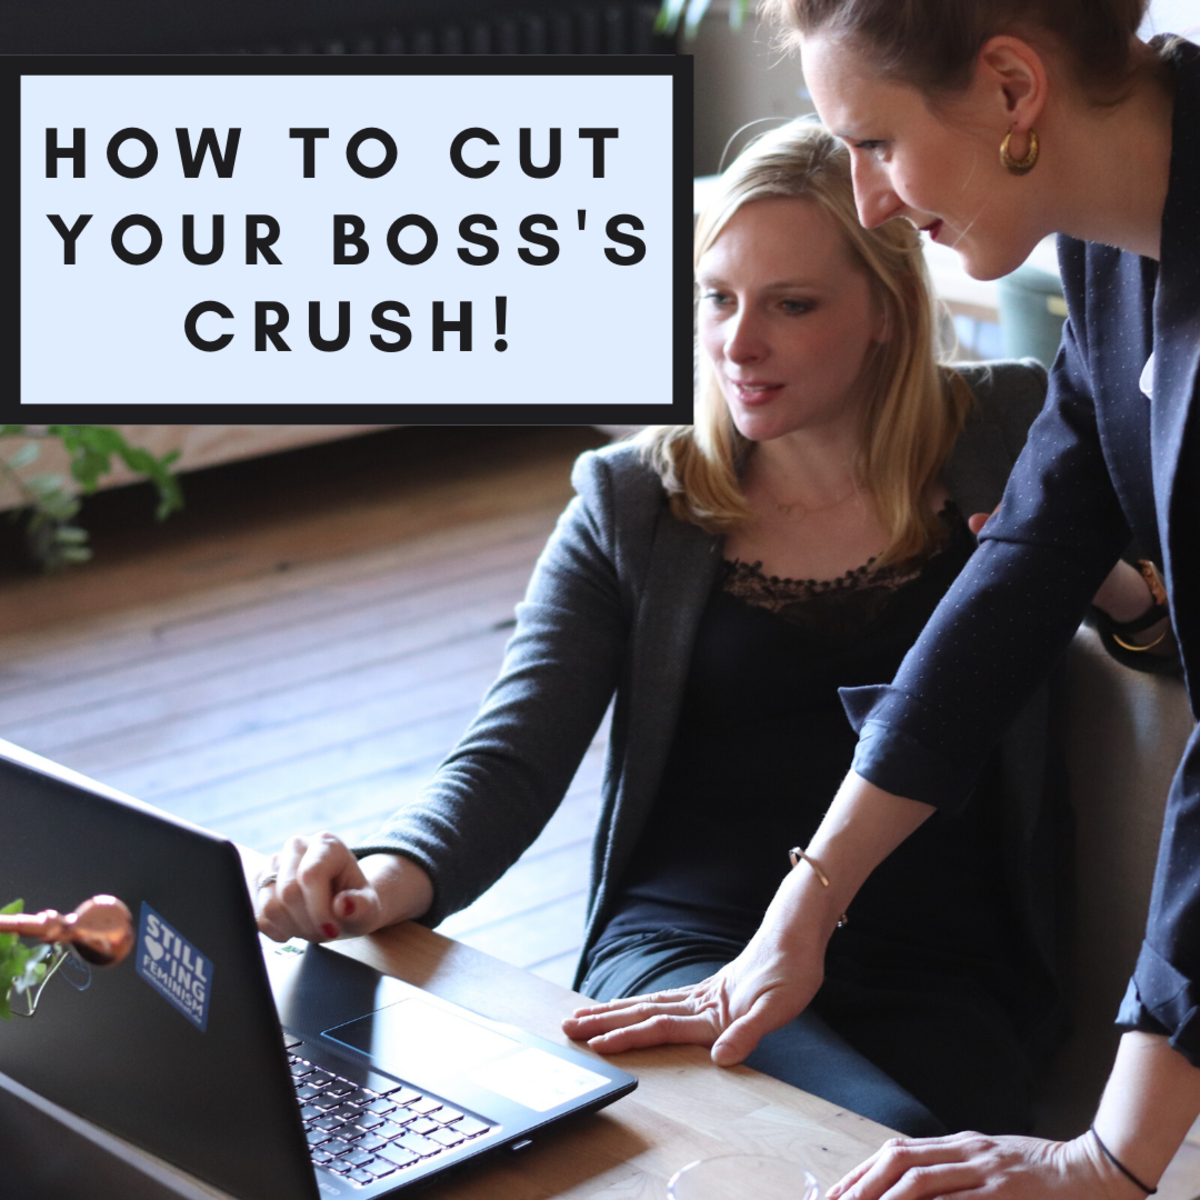 How to Cut Your Boss's Crush... and Not Get Fired!